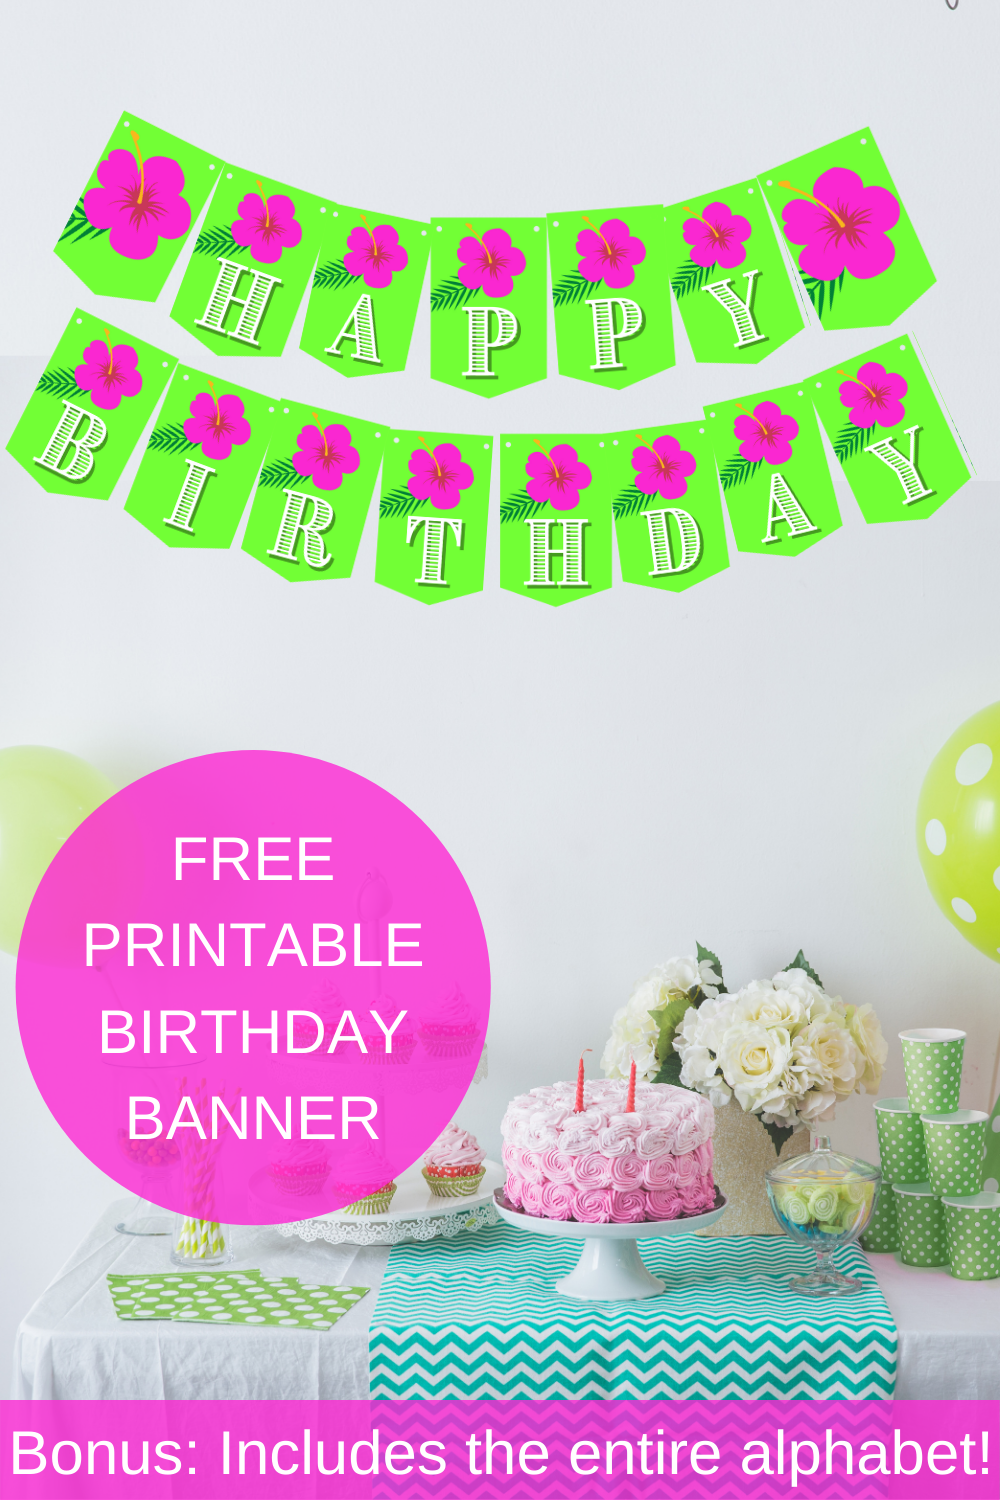 pink and green banner with a tropical flower on it for a birthday party